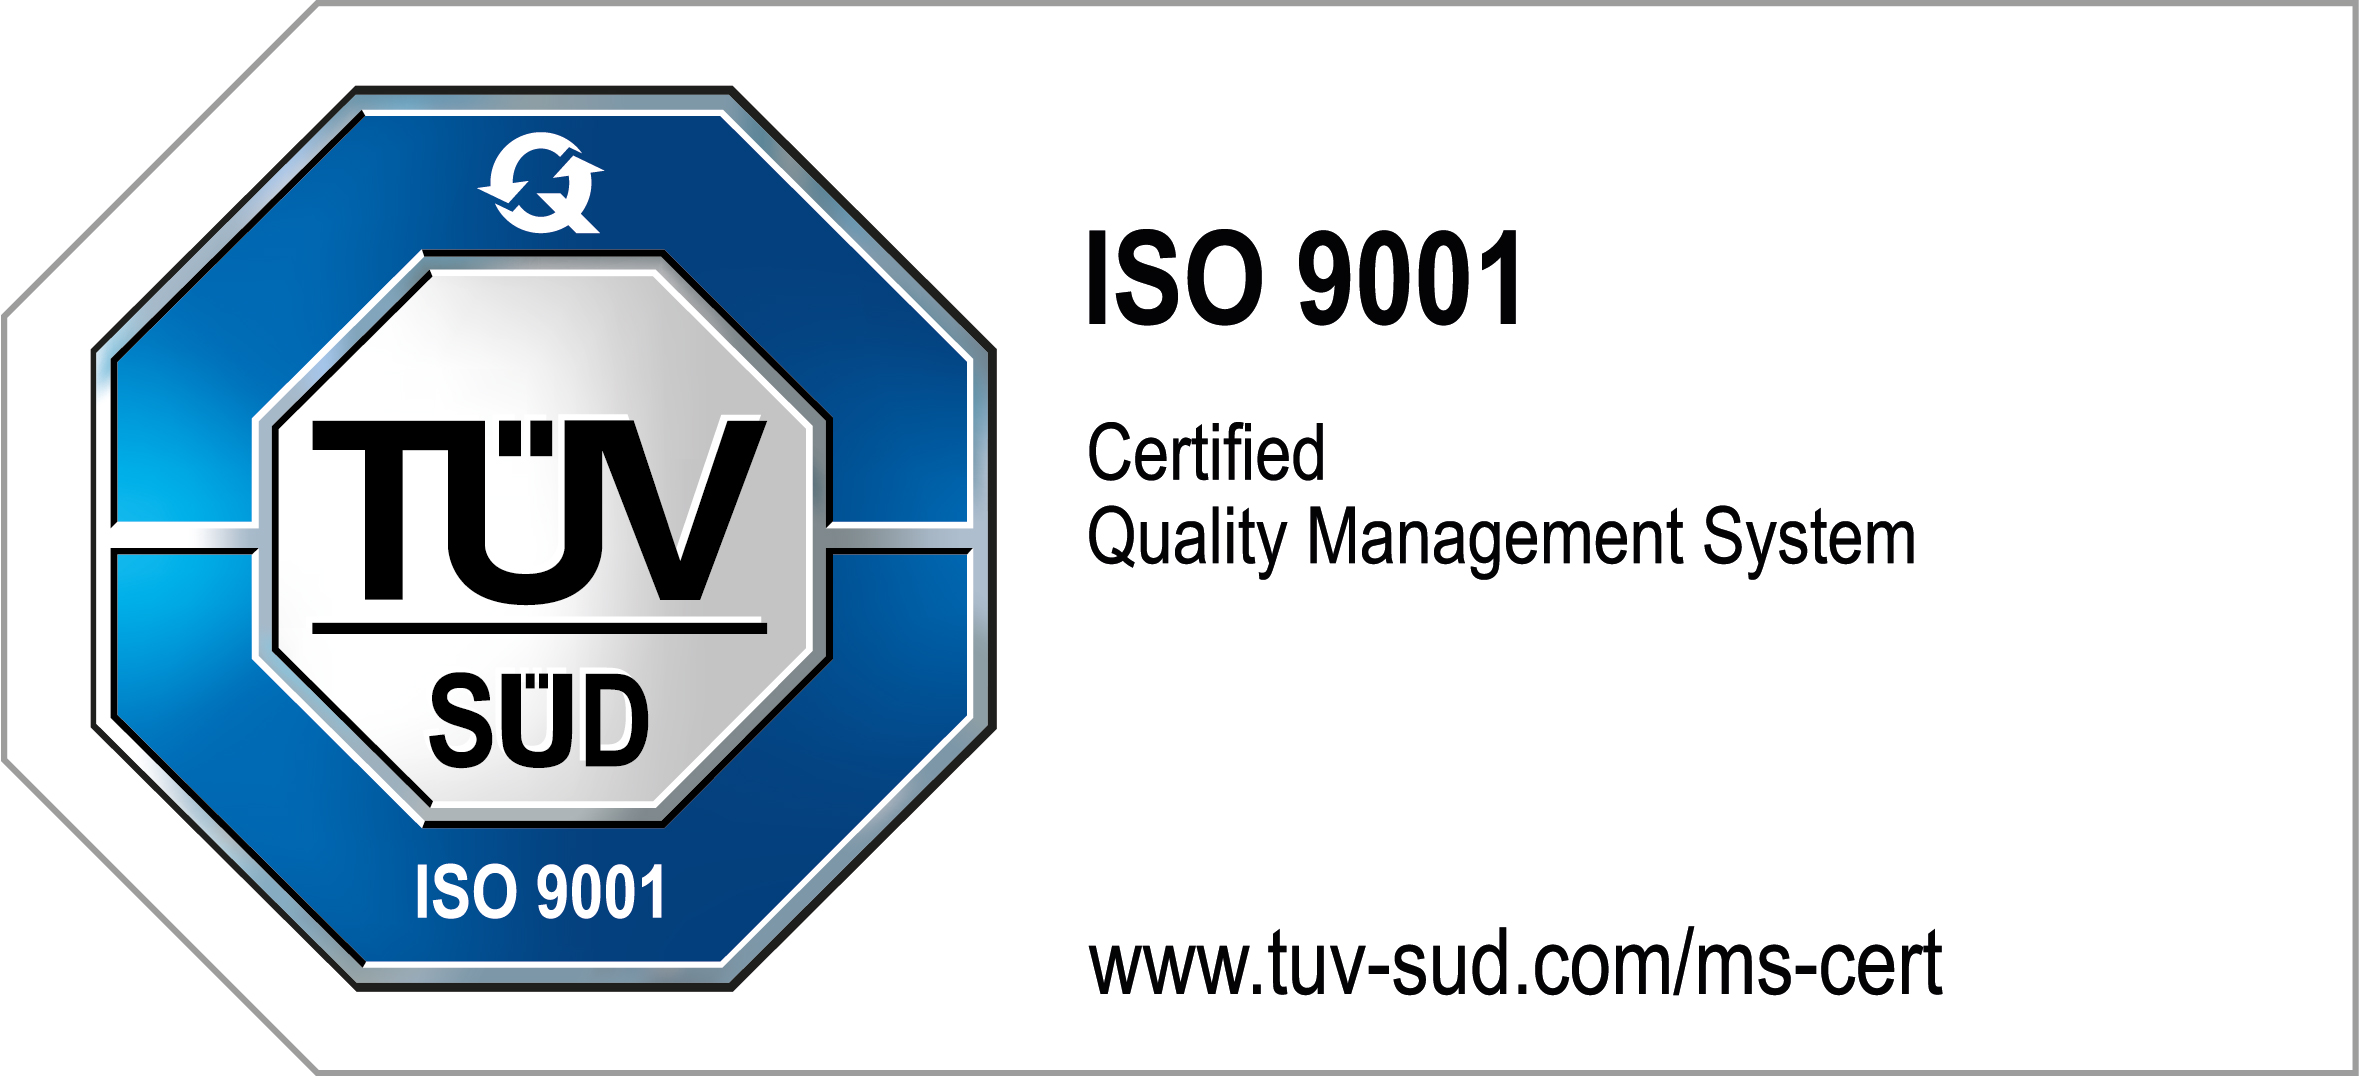 NeuroCheck TÜV seal for ISO certification (Image © NeuroCheck)